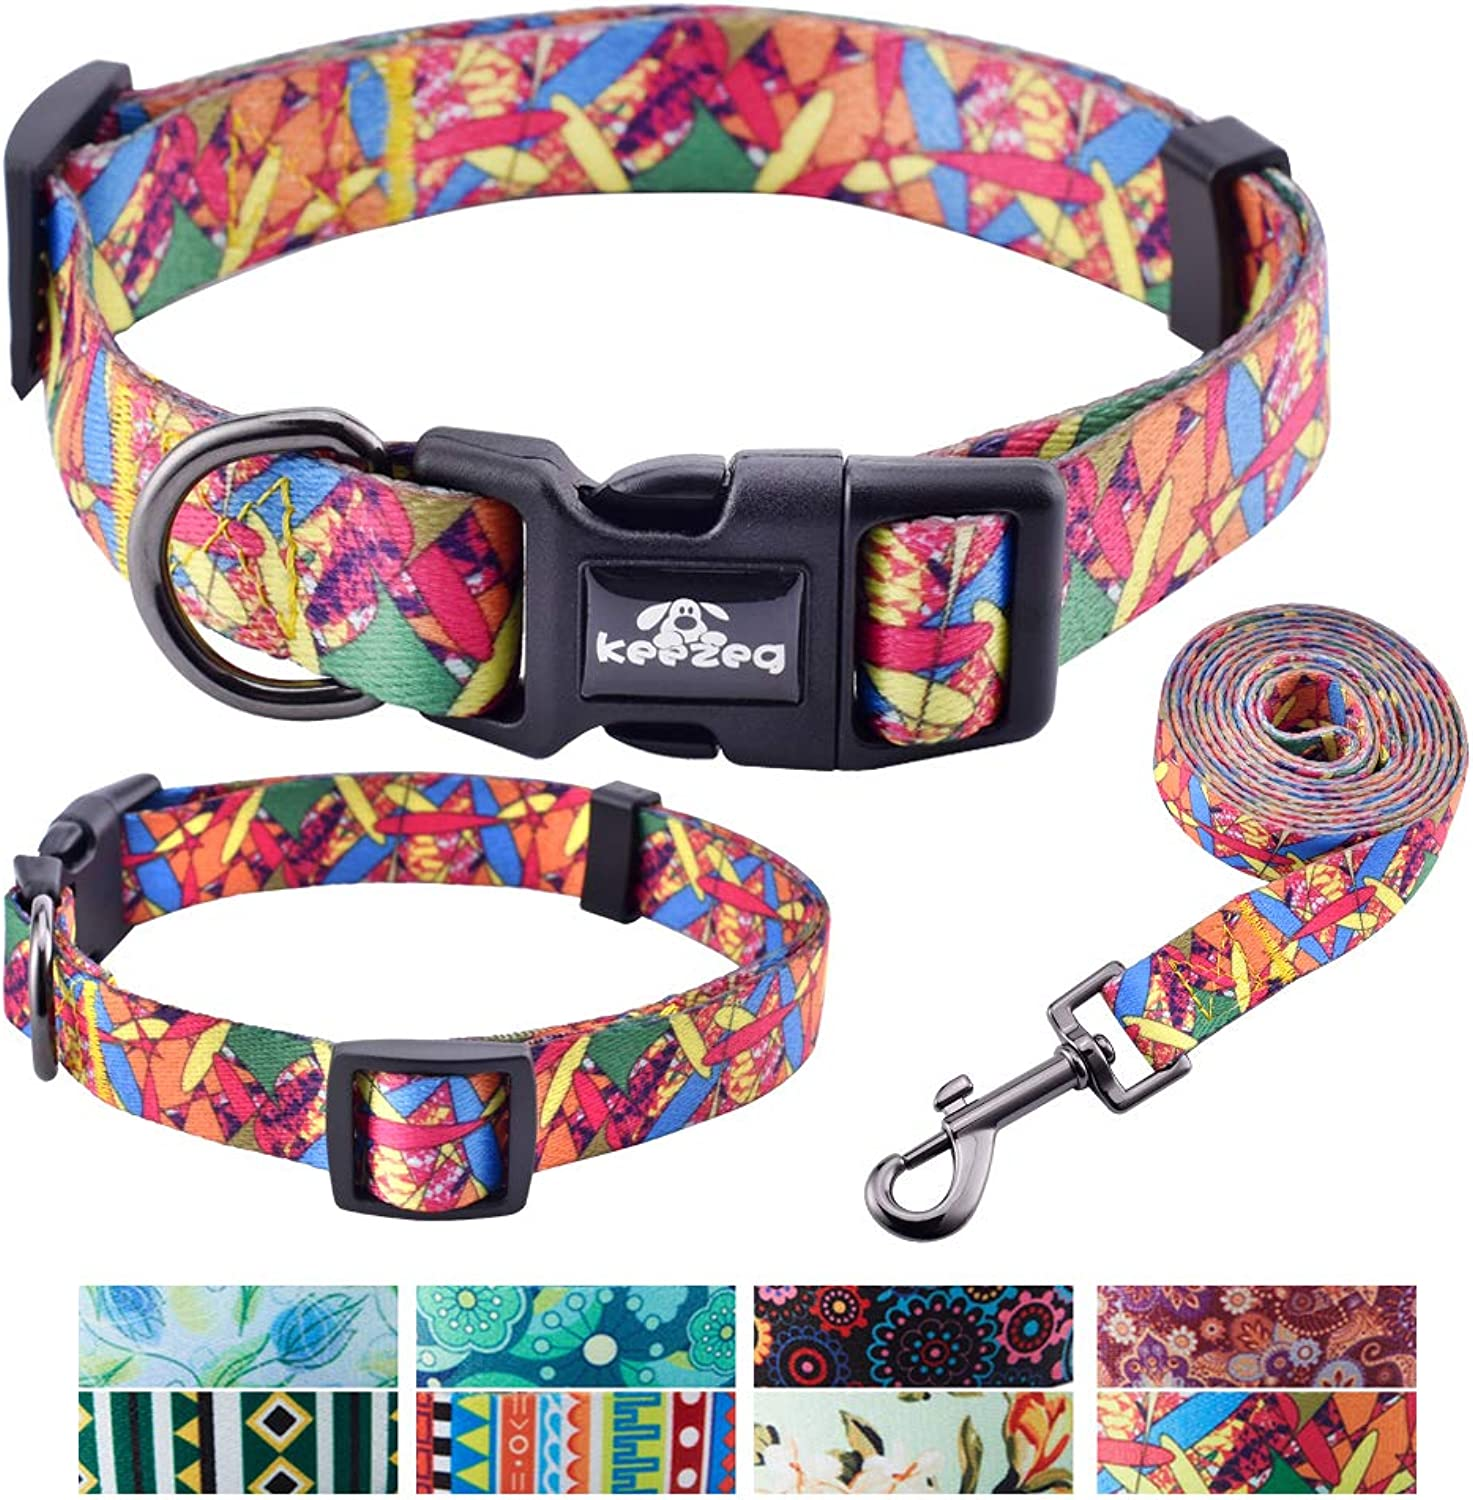 Keezeg Dog Collar Leash Set, Adjustable Collars for Dogs Small Medium Large, Durable and Comfort (XLarge, Forest color)